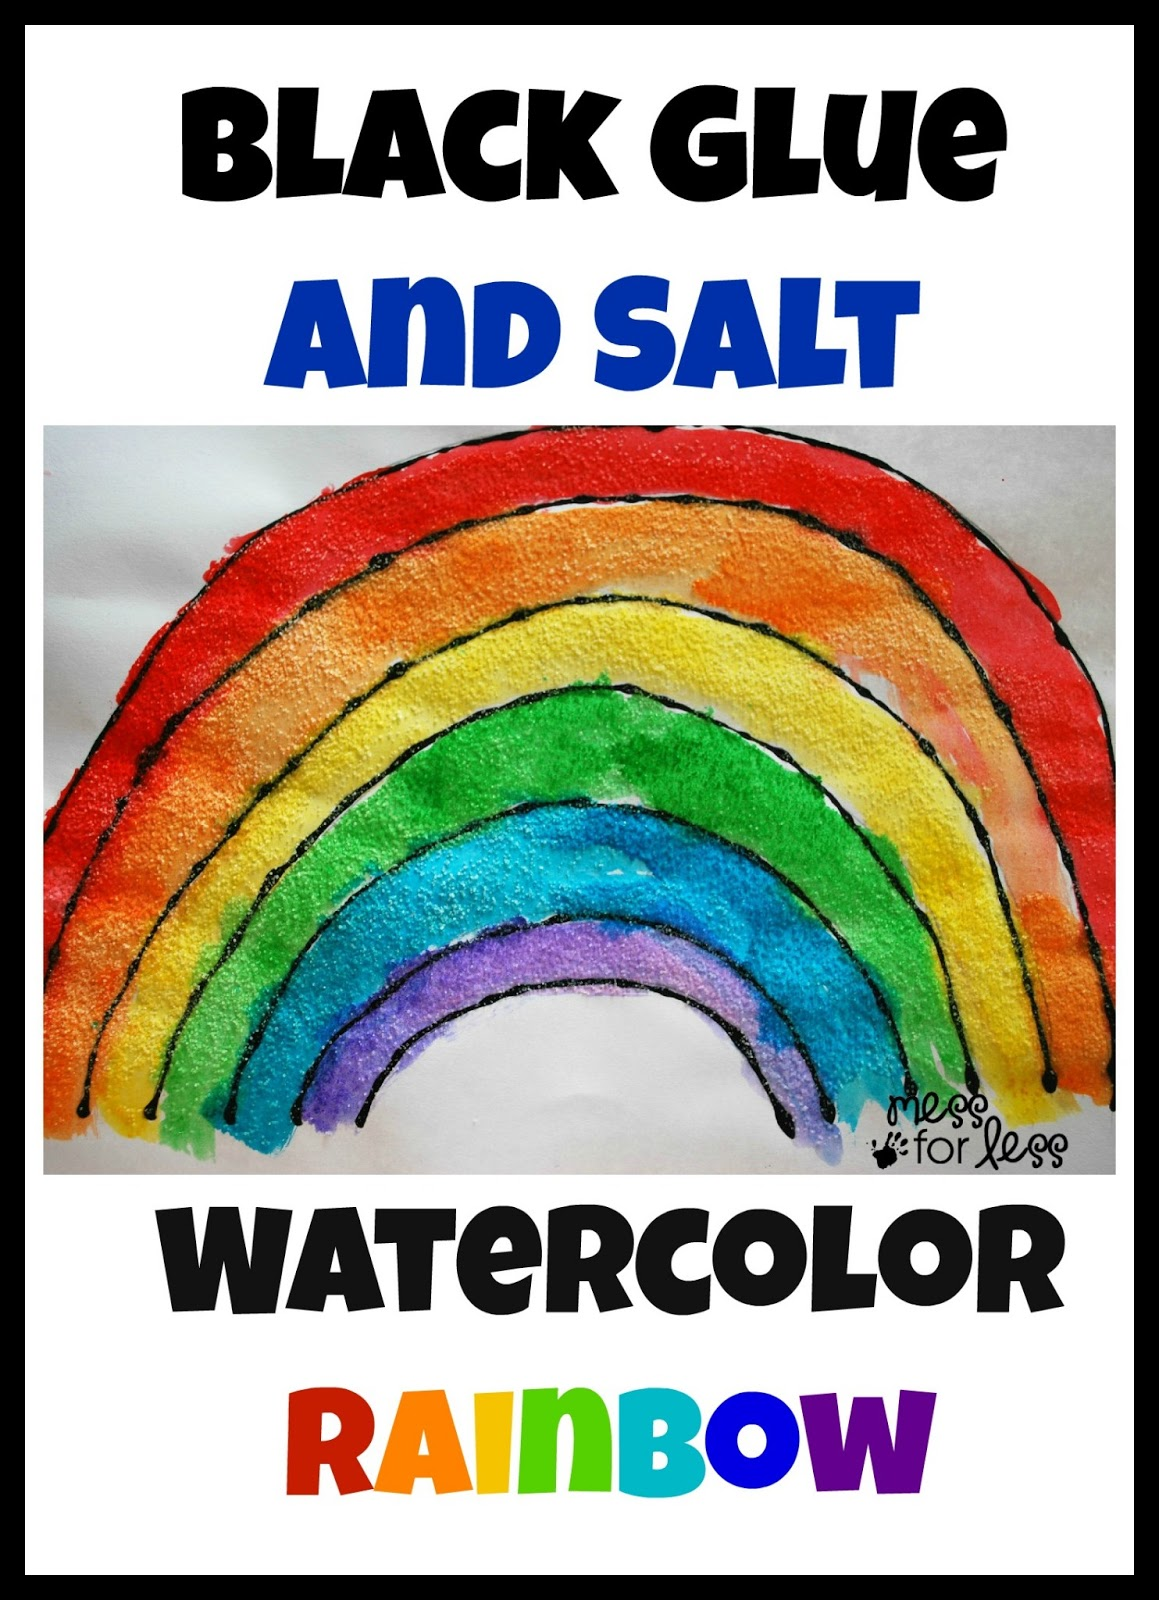 36 Diy Rainbow Crafts That Will Make You Smile All Day Long Tafhs Com